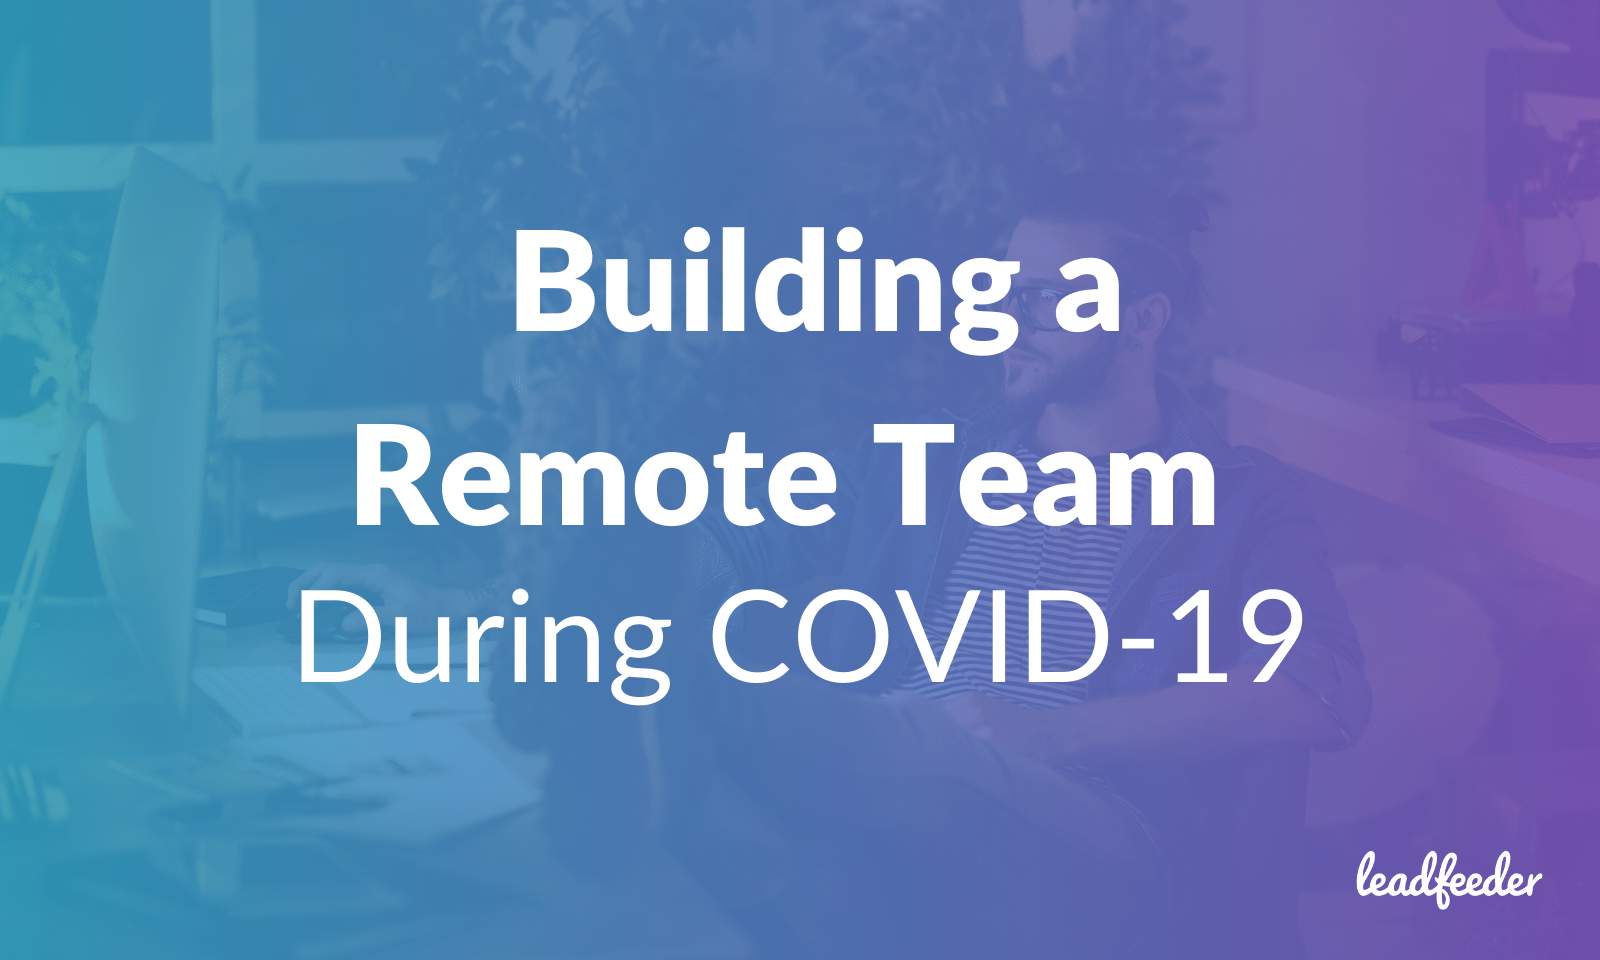 remote work during covid19 header